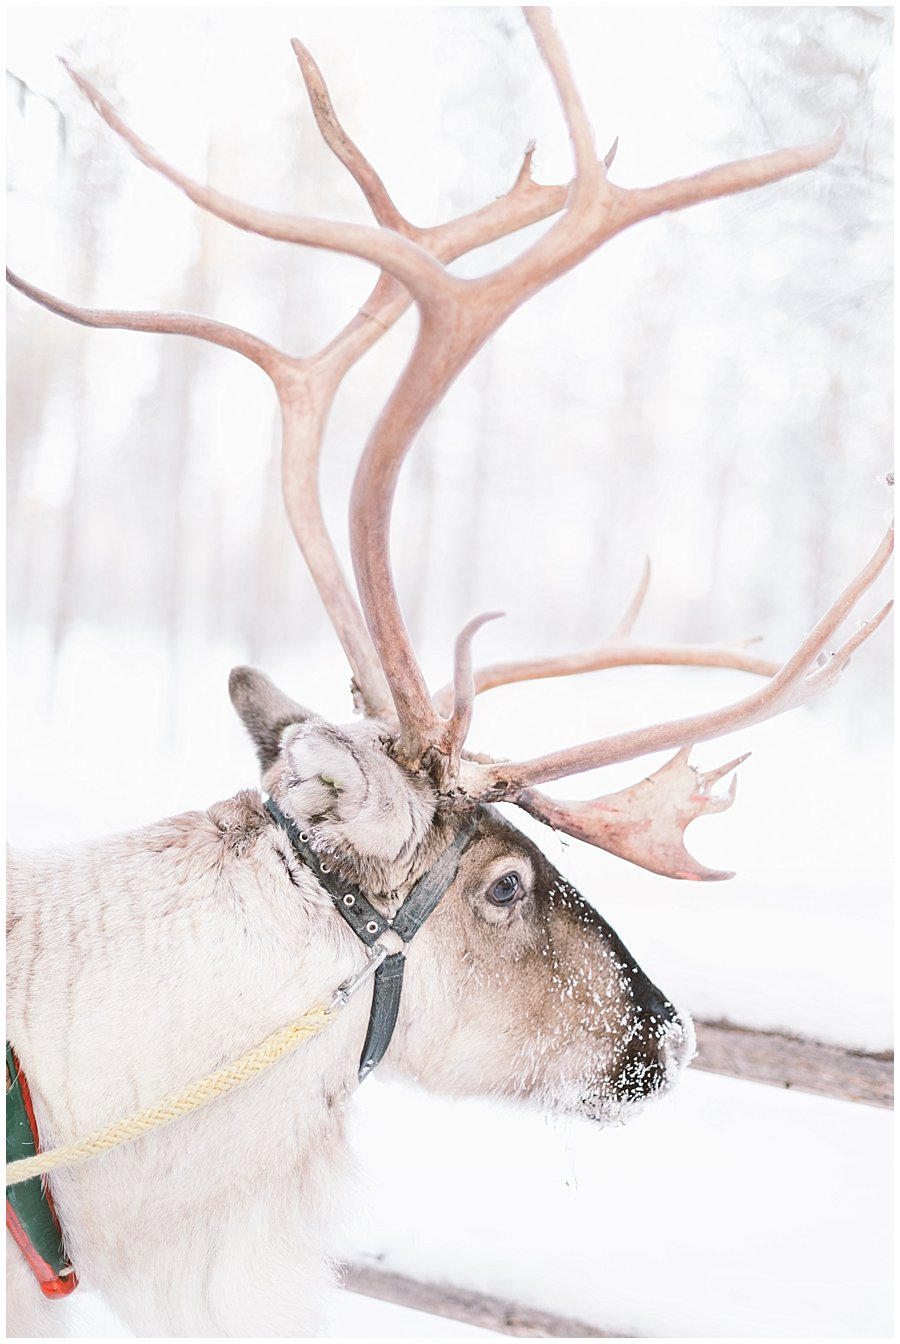 Reindeer Safari Levi Lapland reindeer with large antlers in Levi Finland by Wild Connections Photography